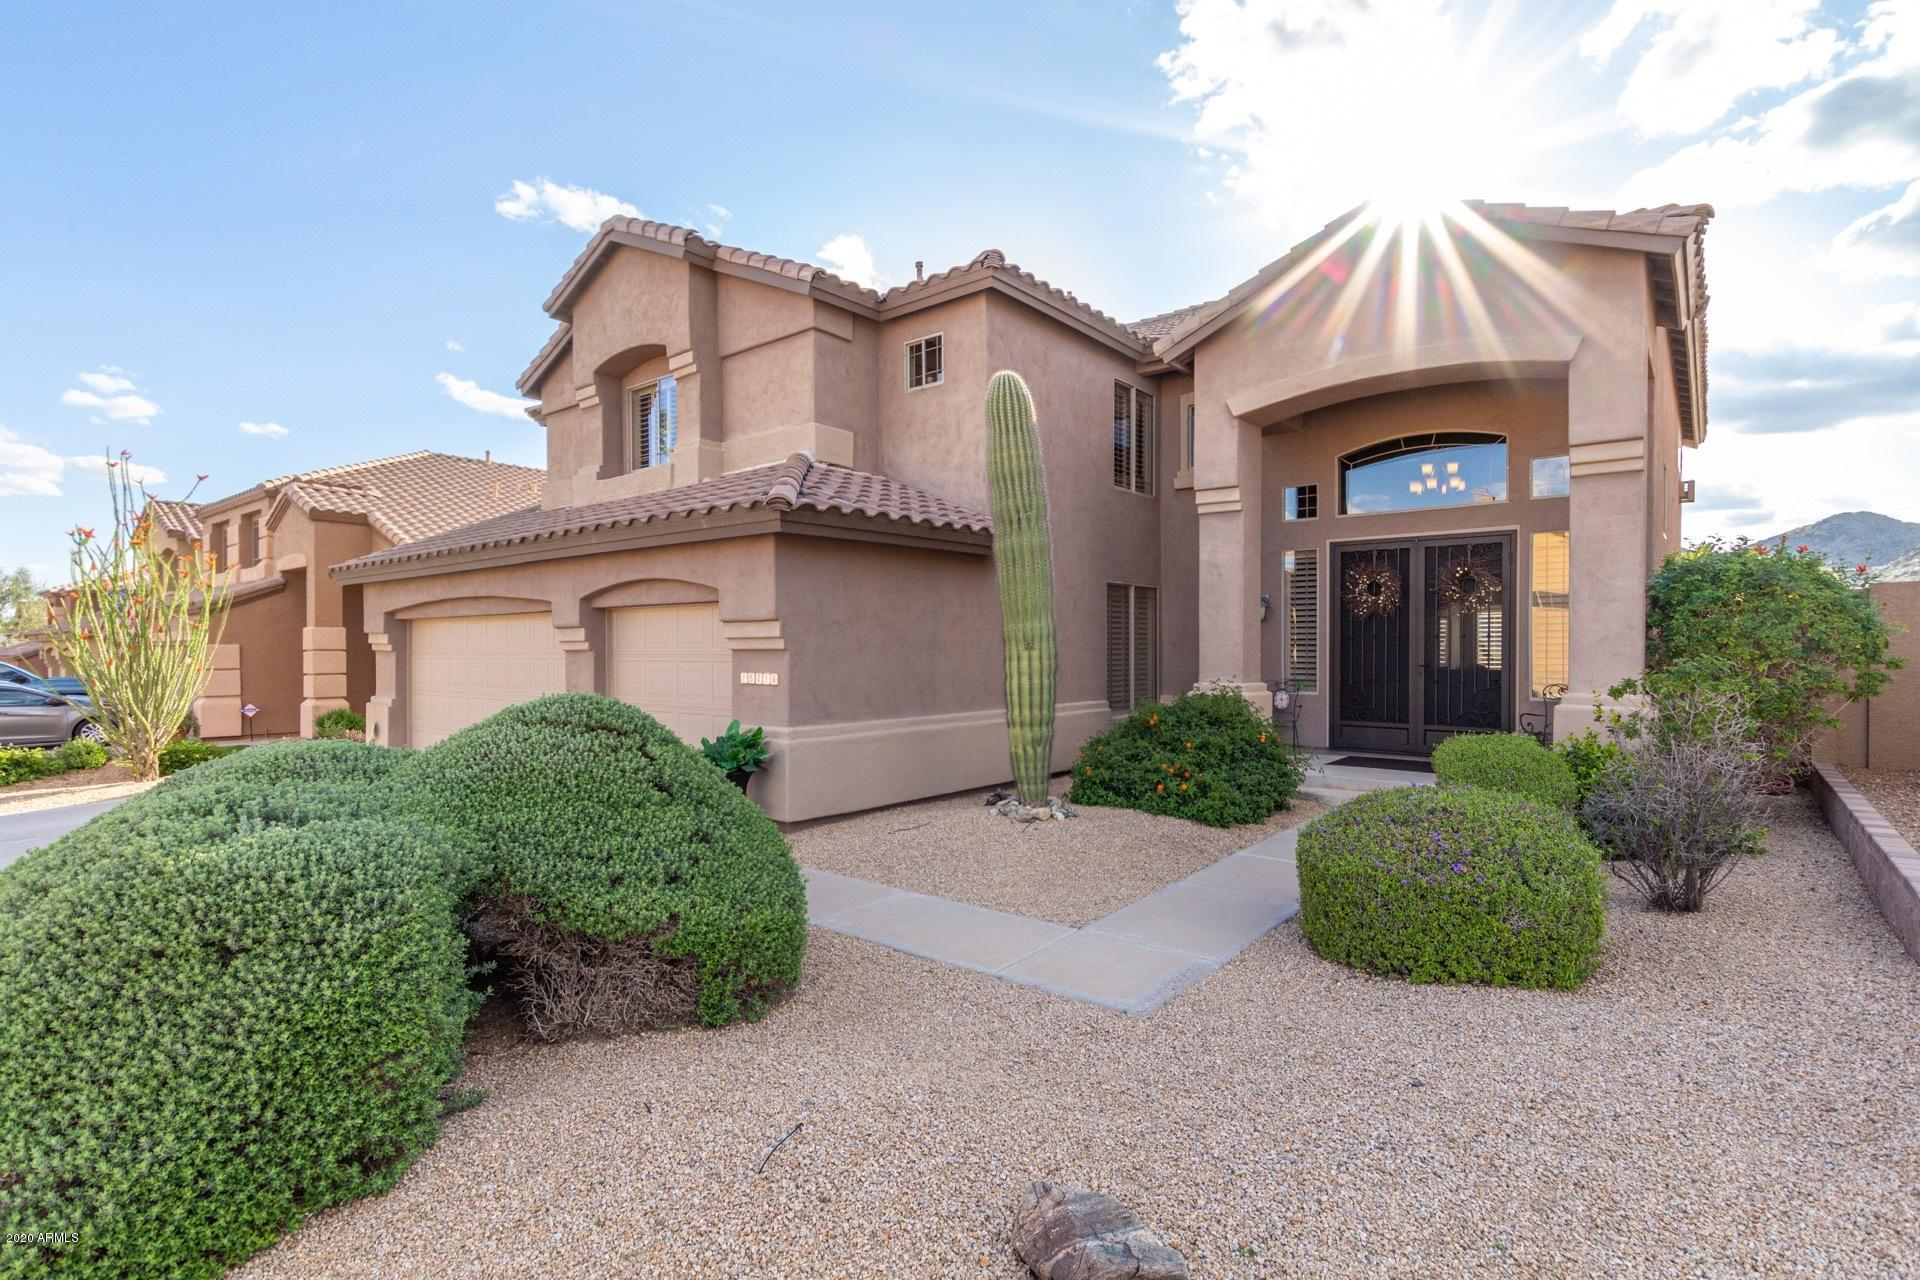 Photo of 15216 S 18TH Drive, Phoenix, AZ 85045